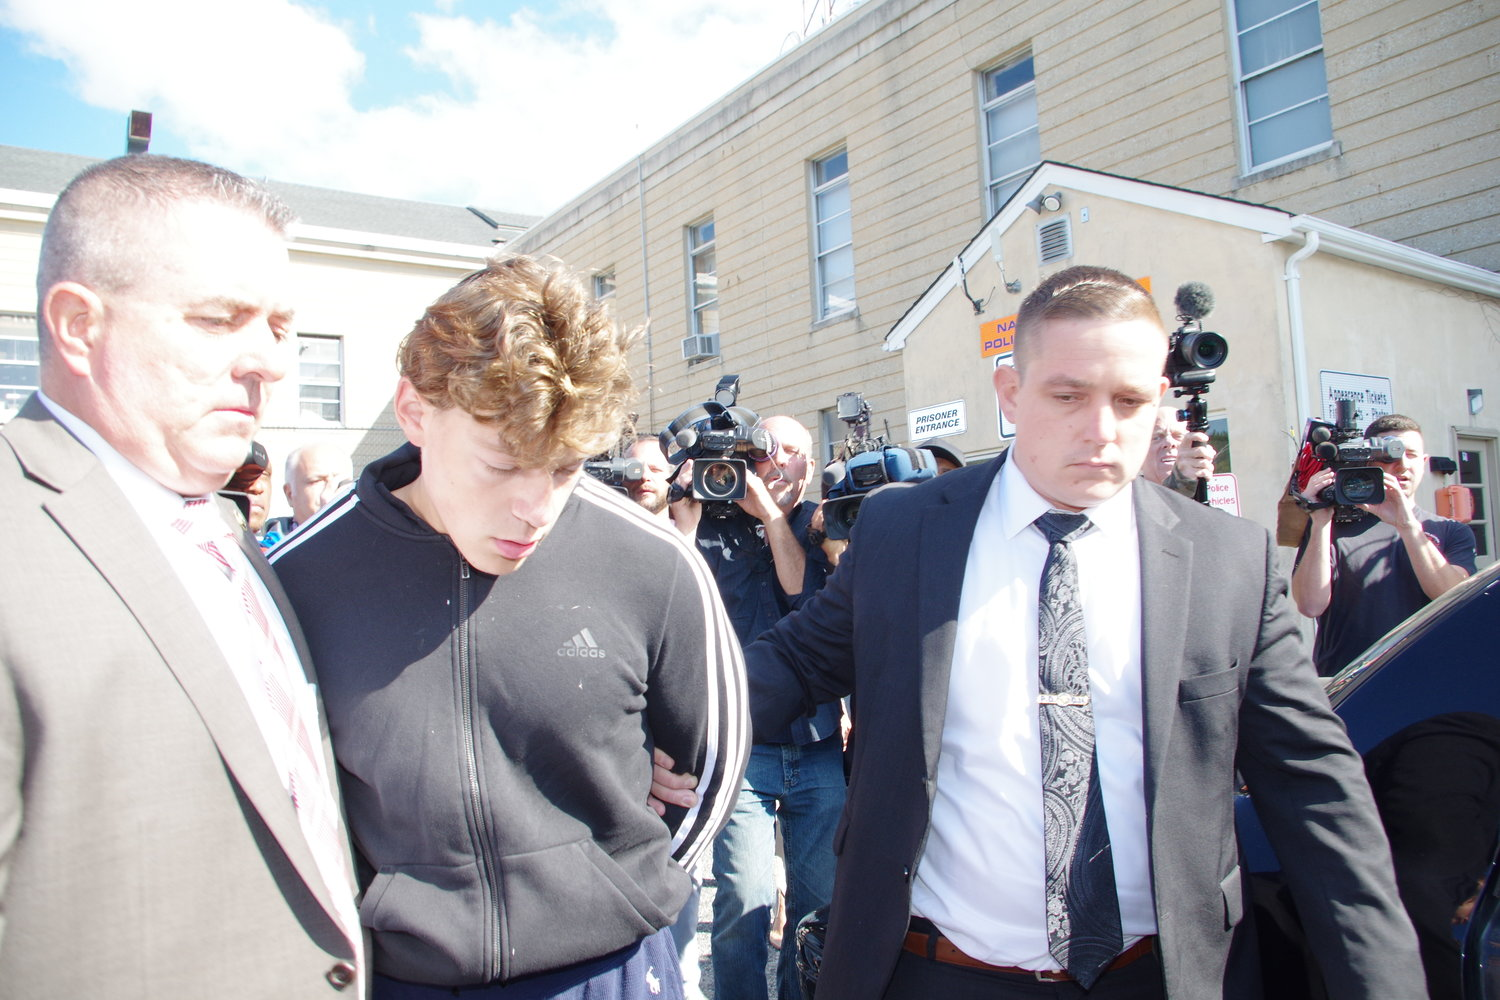 Tyler Flach was indicted on Tuesday in the stabbing death of 16-year-old Khaseen Morris.